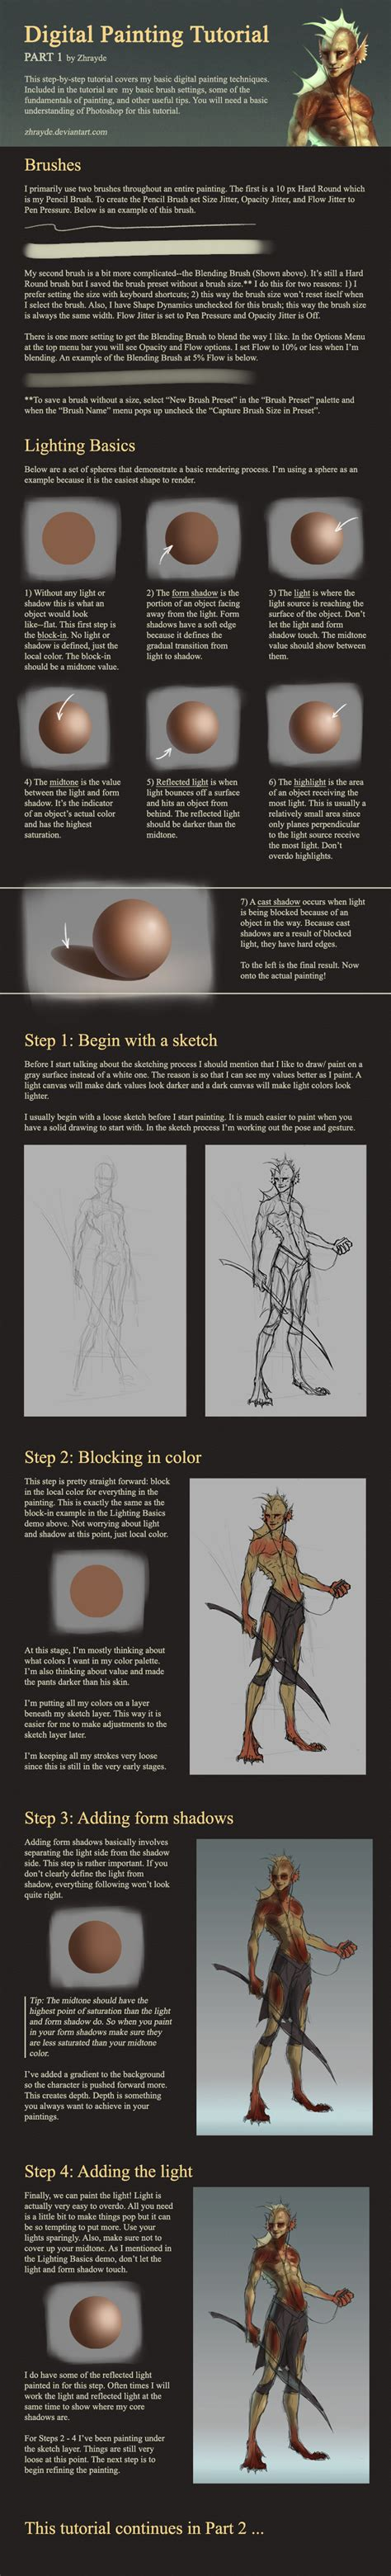 watercolor tutorial part 1 digital painting tutorial part 1 by zhrayde on deviantart